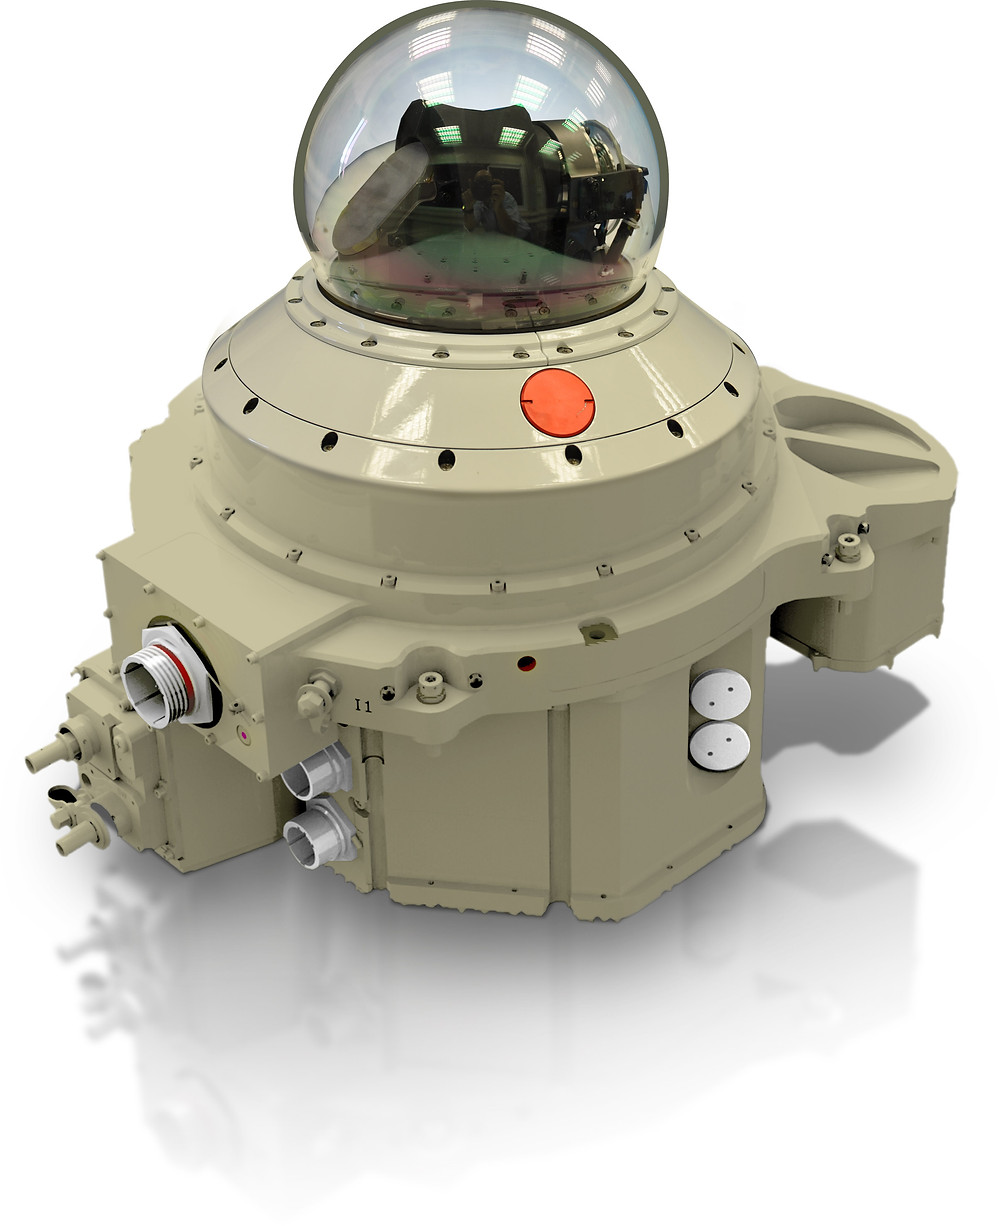 Elbit Systems awarded $25 million contract to supply DIRCM systems